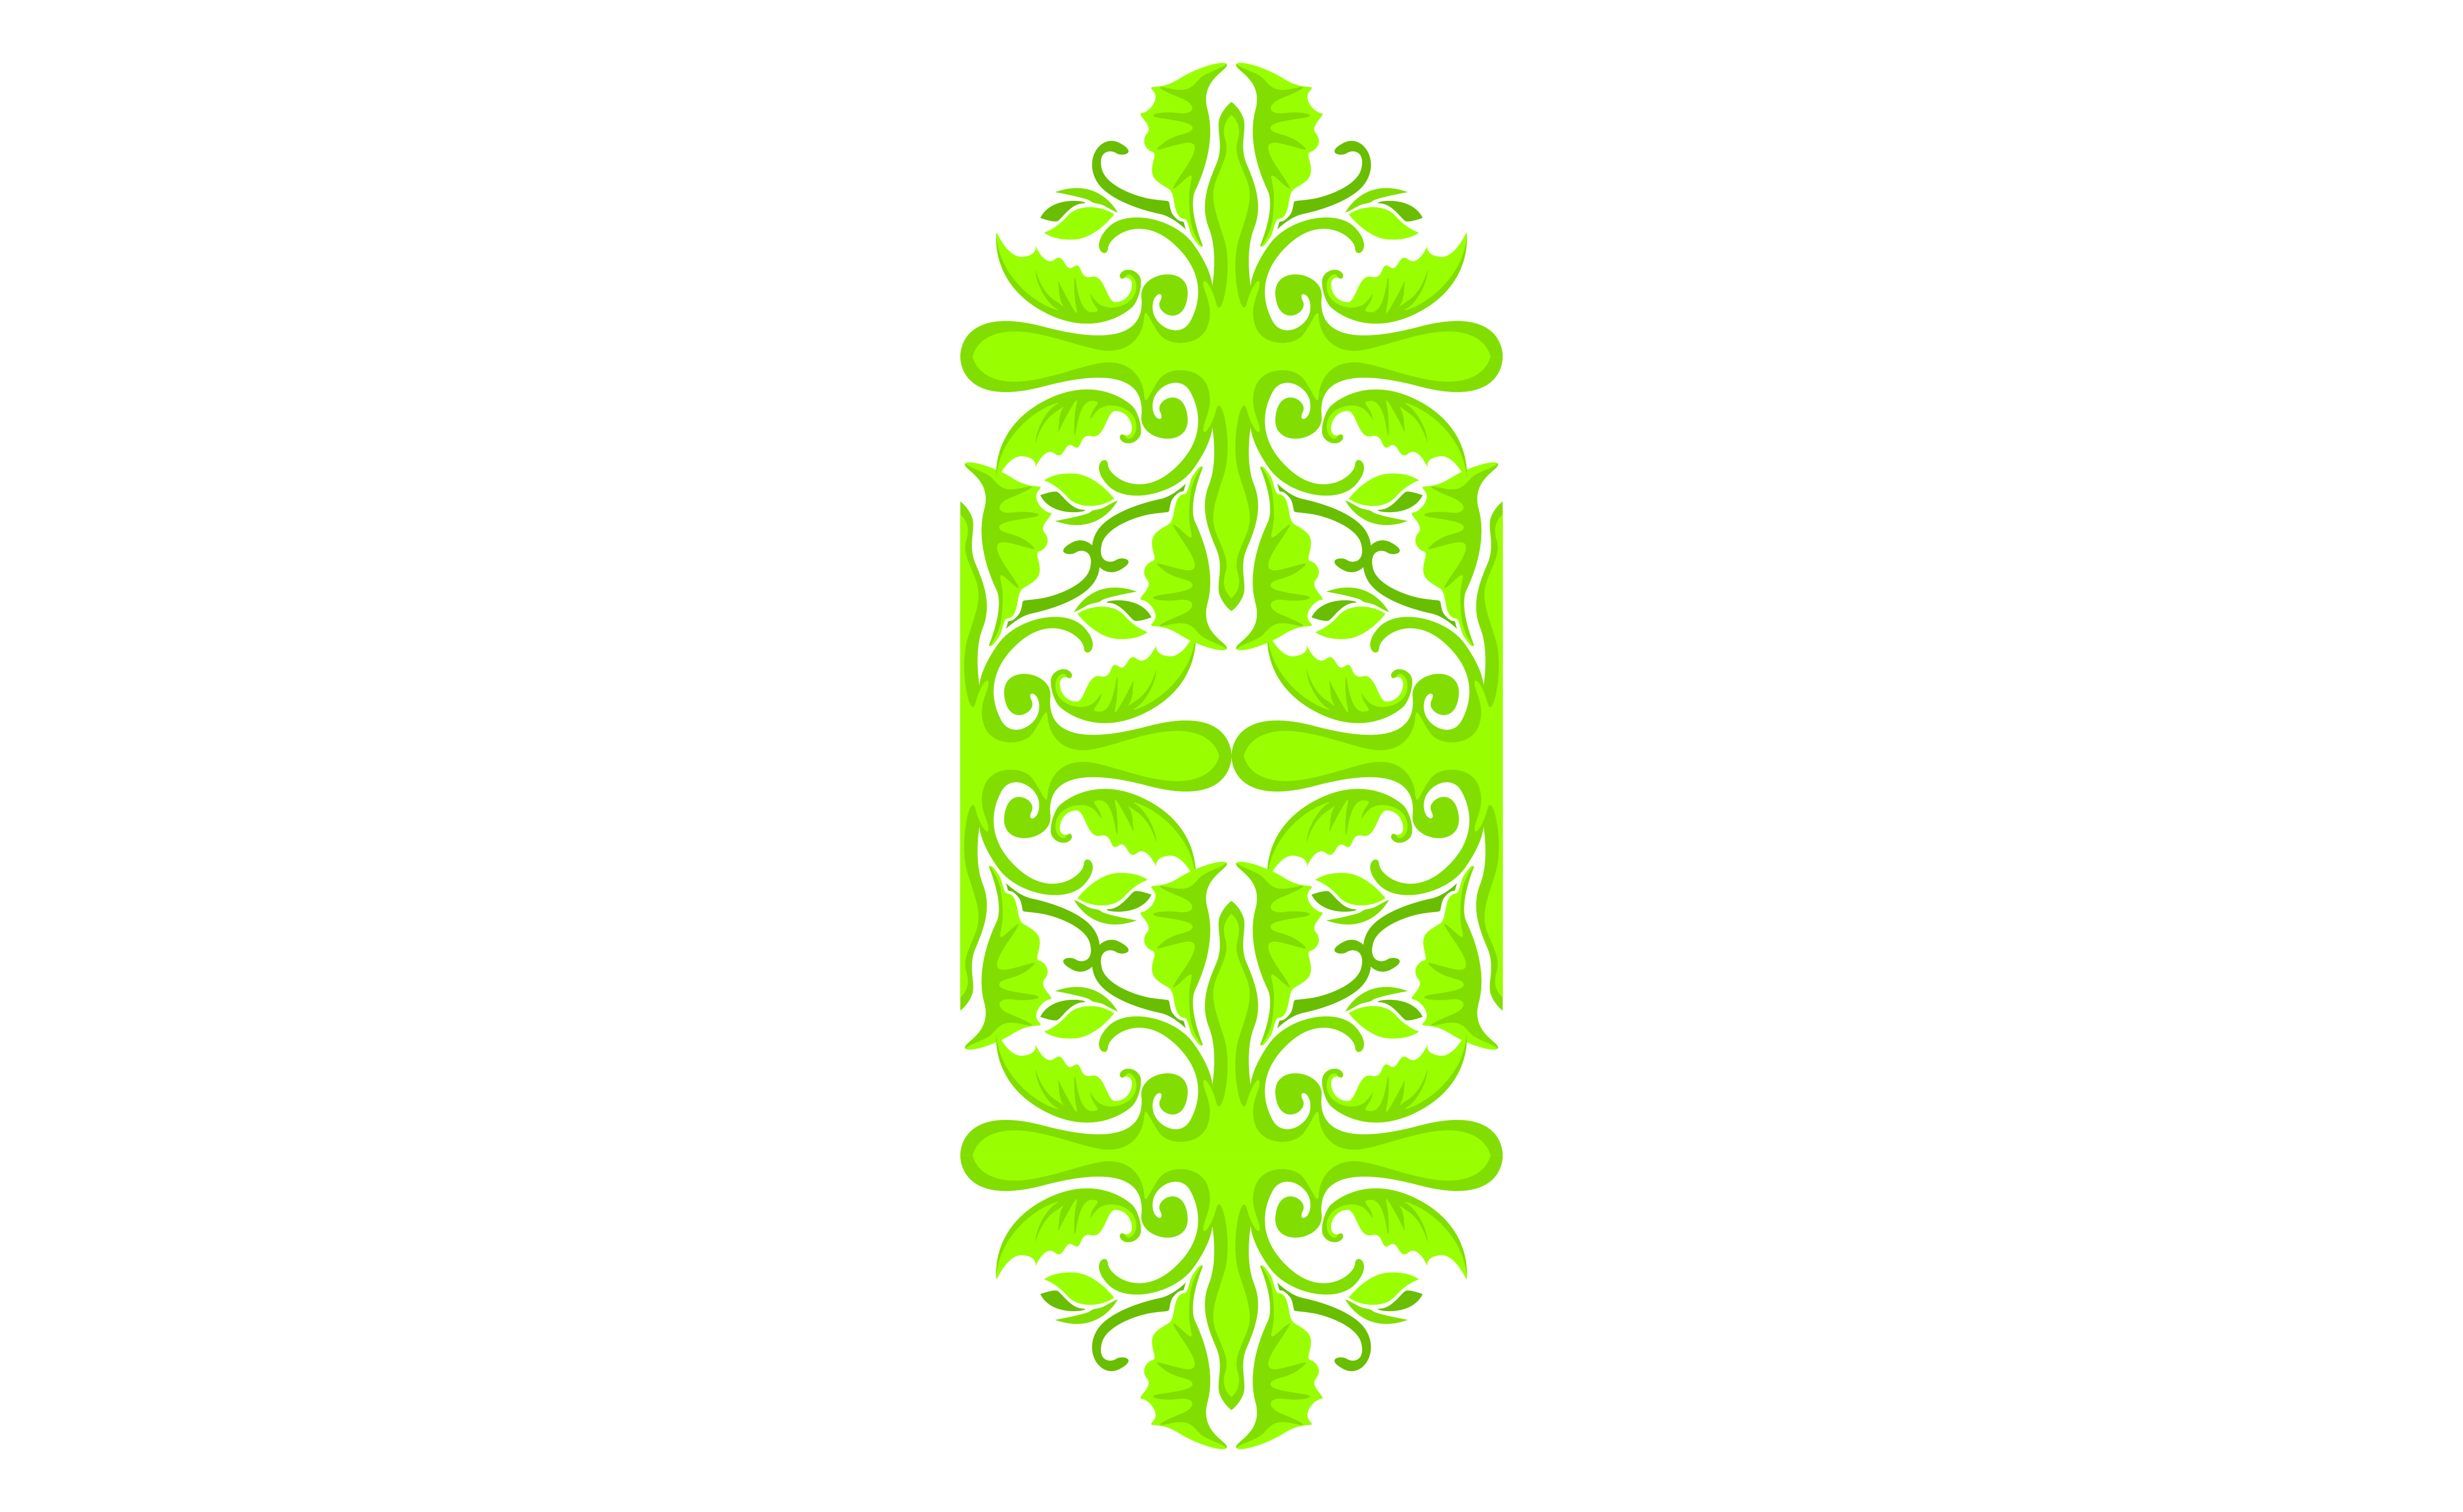 Download Free Green Ornament Border Design Graphic By Arief Sapta Adjie for Cricut Explore, Silhouette and other cutting machines.